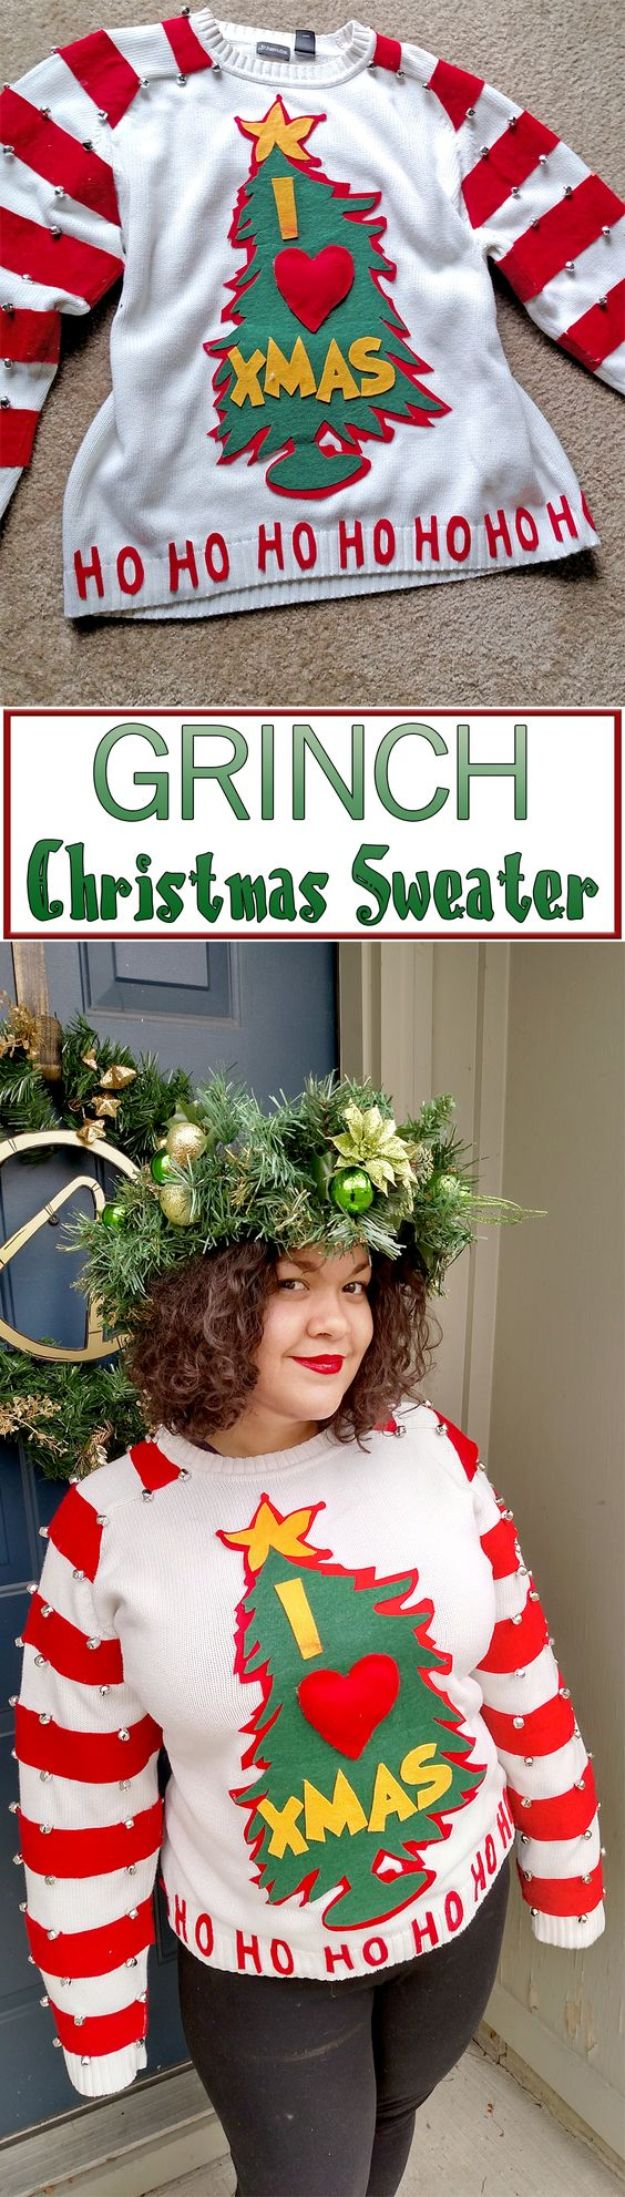 DIY Ugly Christmas Sweaters - Easy DIY Grinch Sweater - No Sew and Easy Sewing Projects - Ideas for Him and Her to Wear to Holiday Contest or Office Party Outfit - Funny Couples Sweater, Mens Womens and Kids #christmas